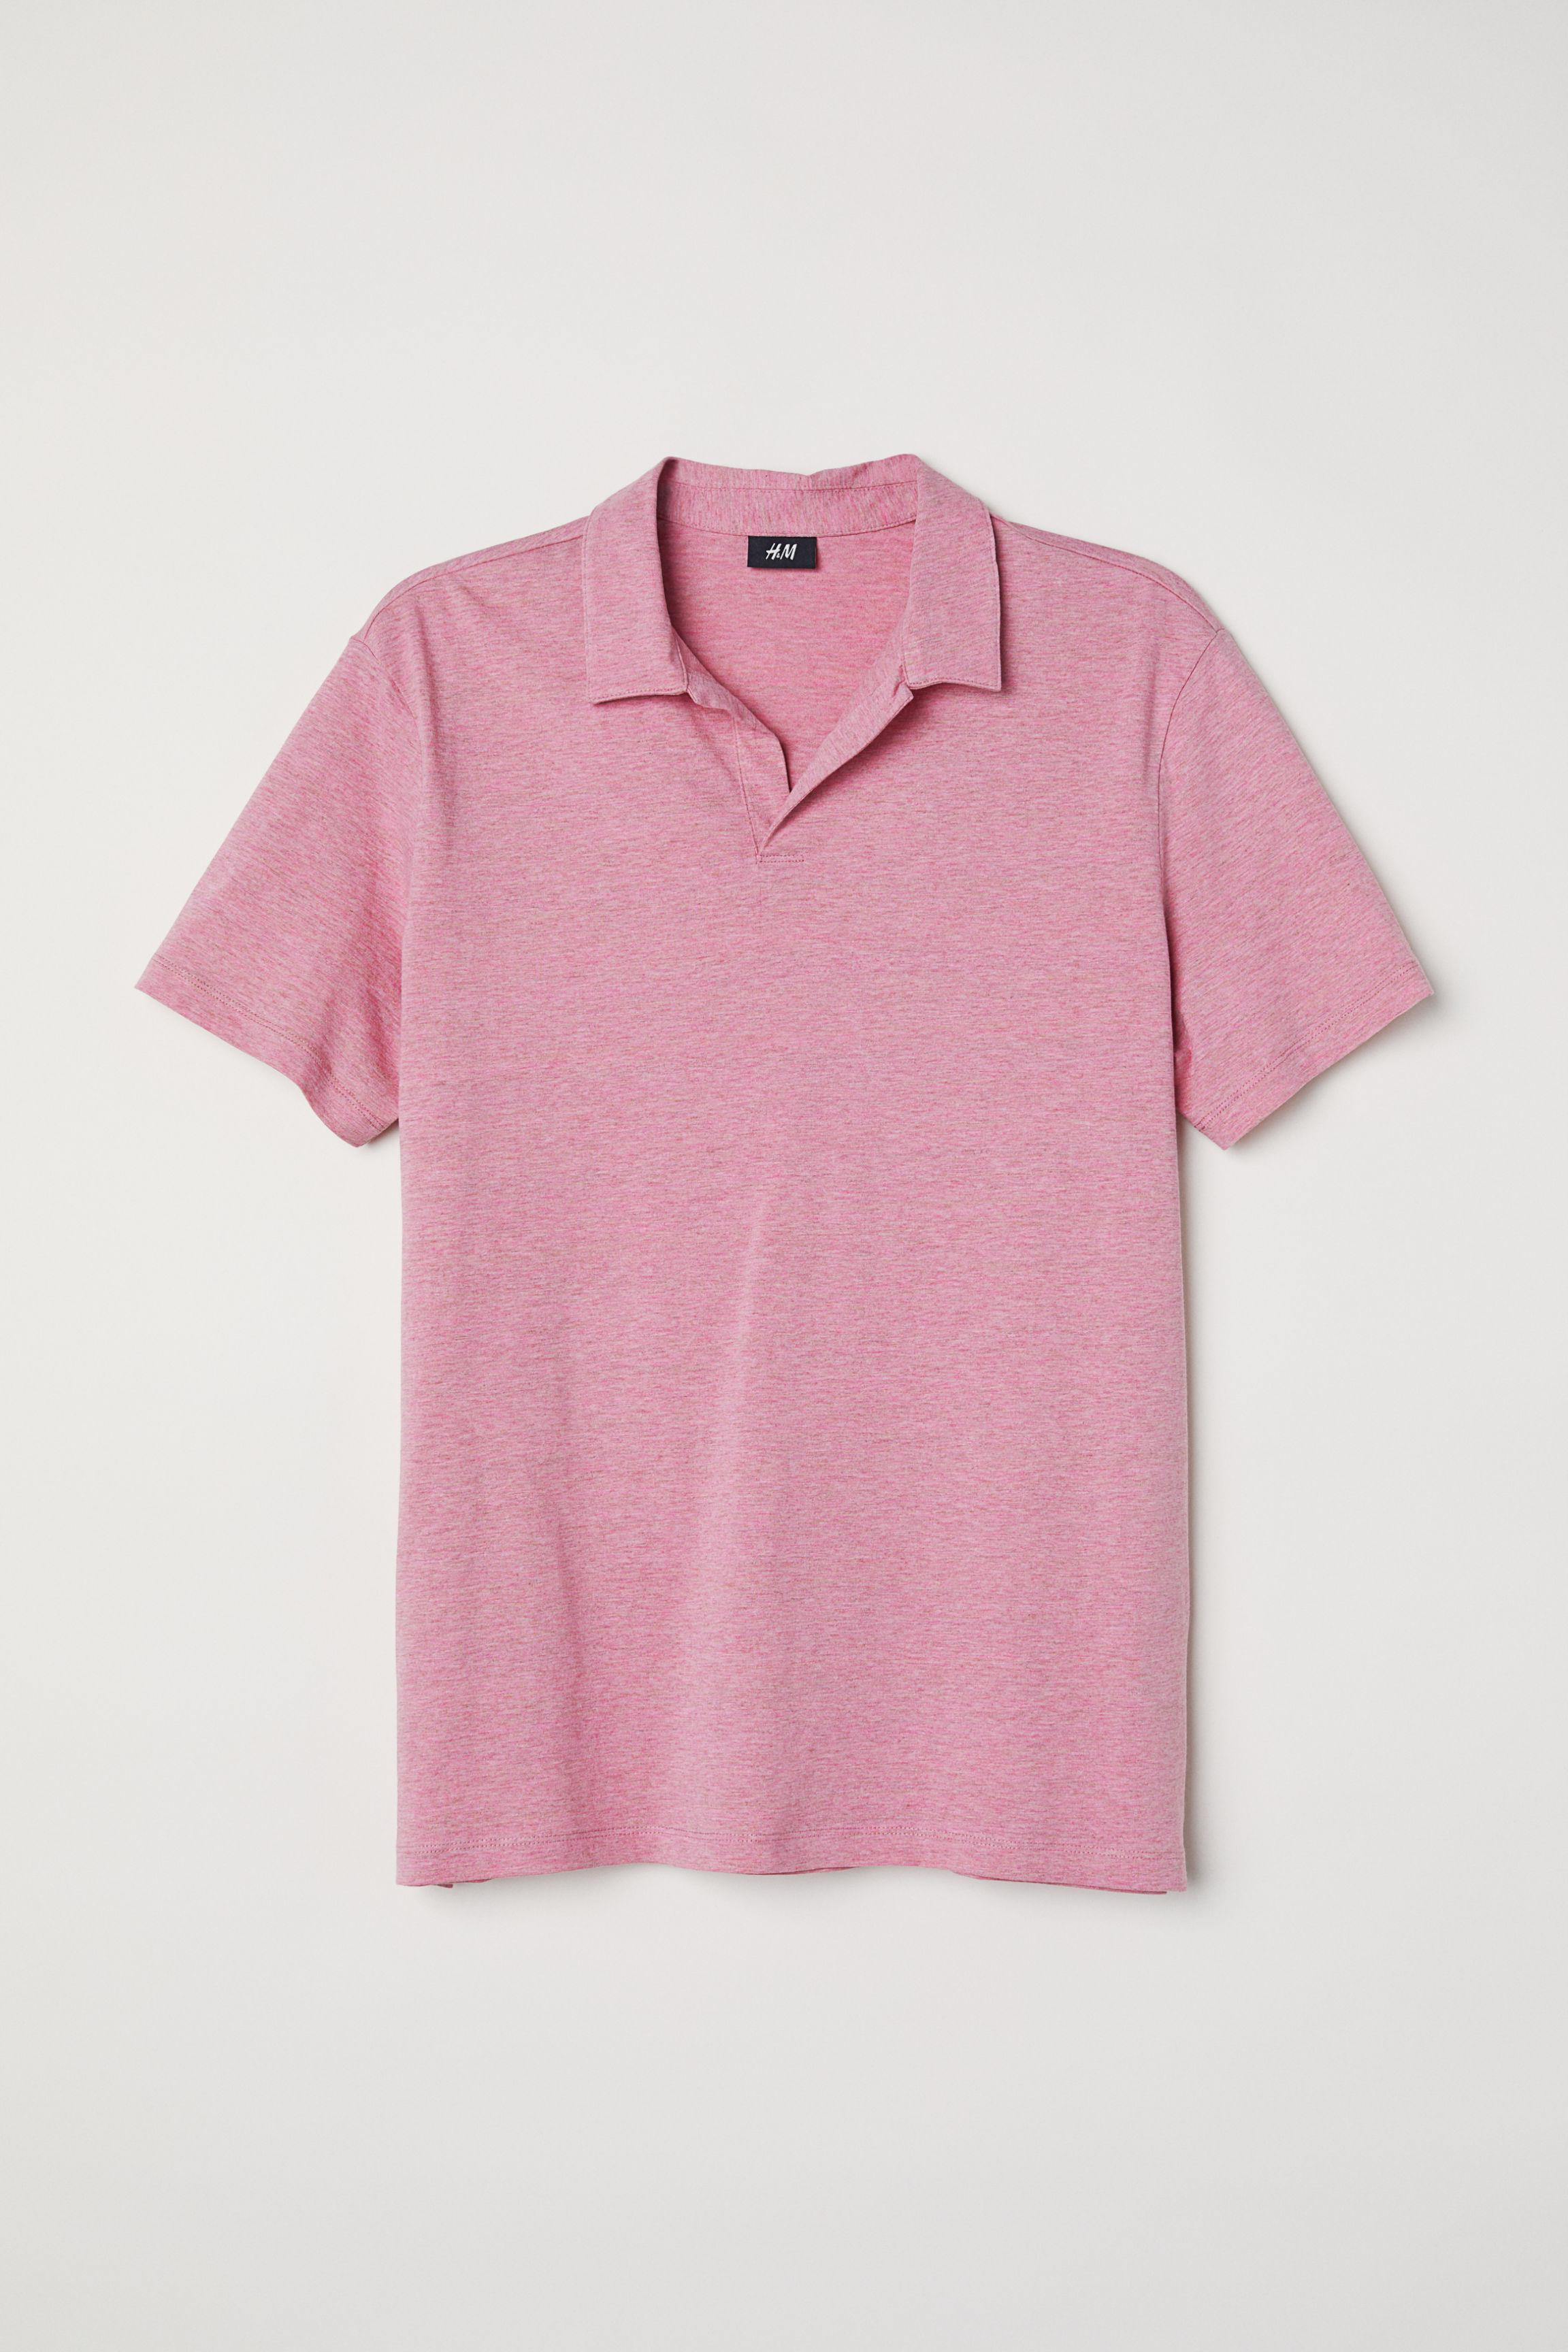 H&M Cotton Polo Shirt in Pink Marl (Pink) for Men